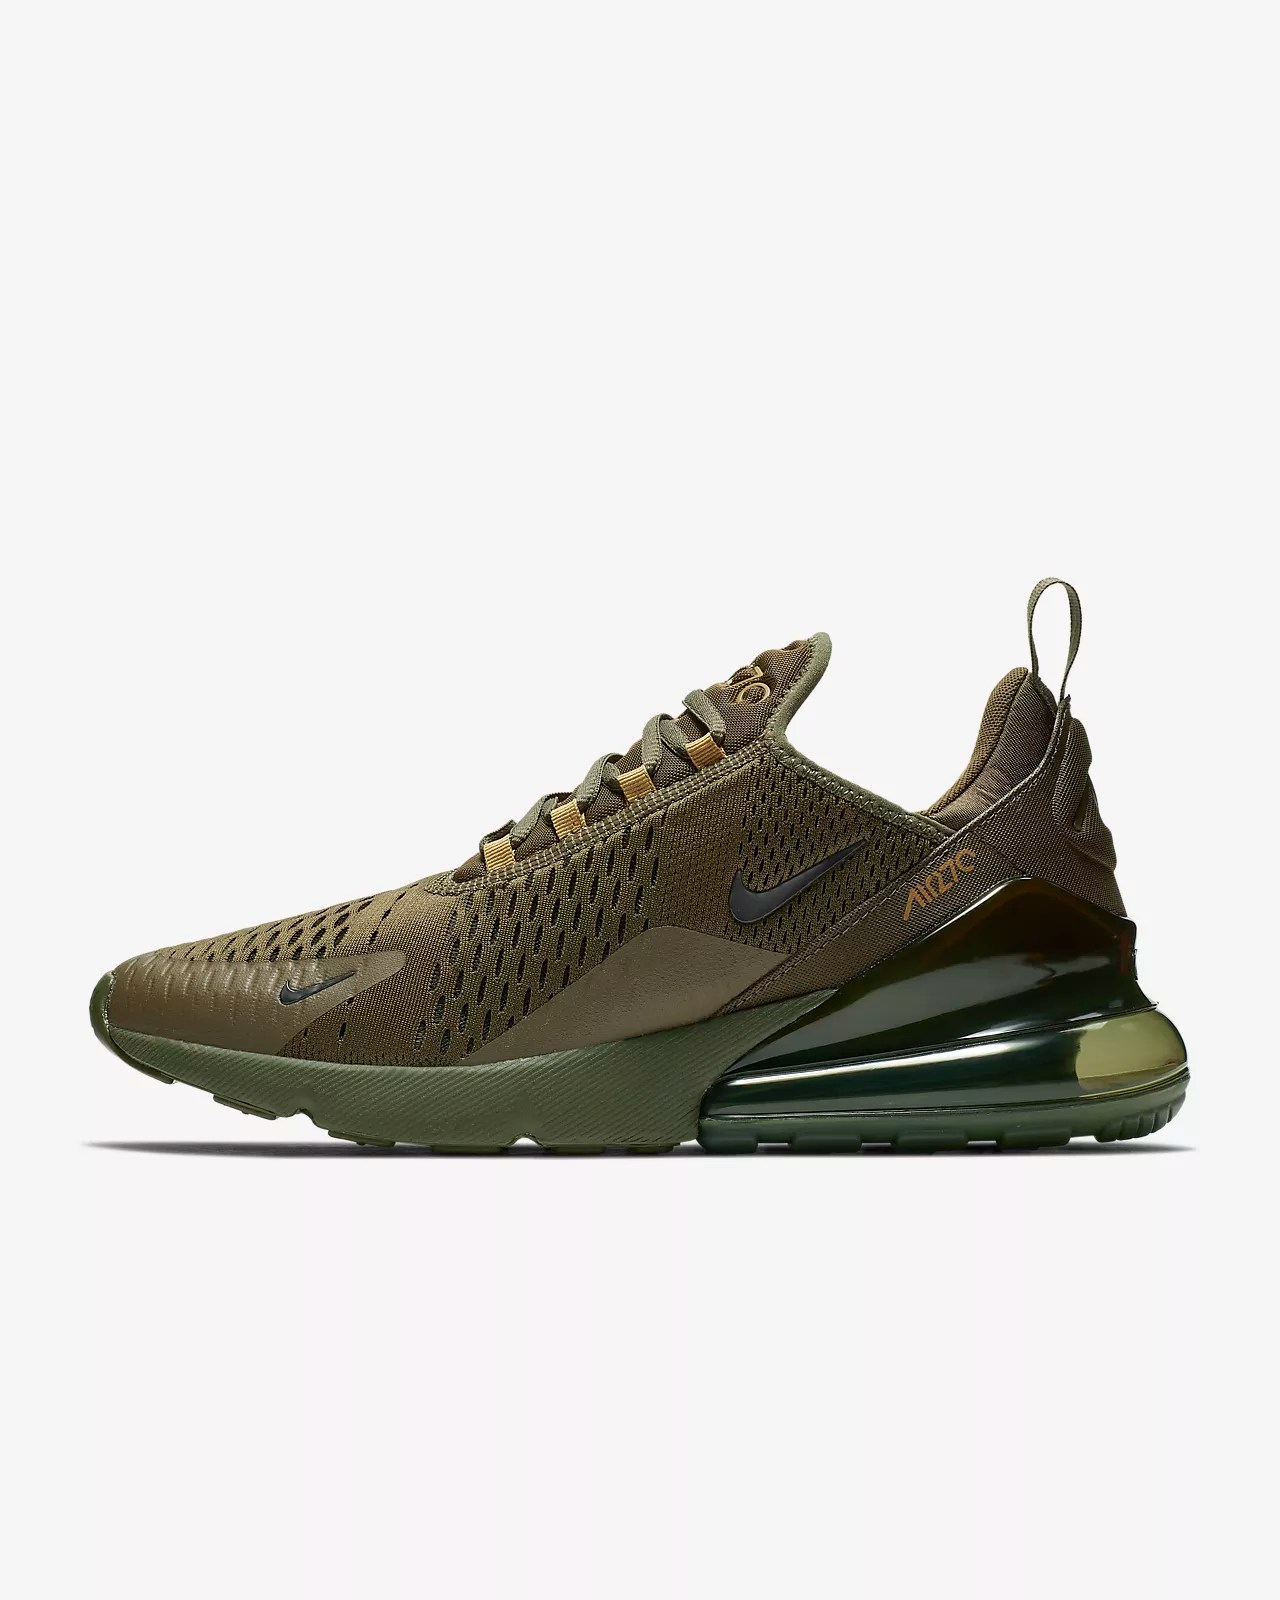 270 95air Max | Hot Trending Now